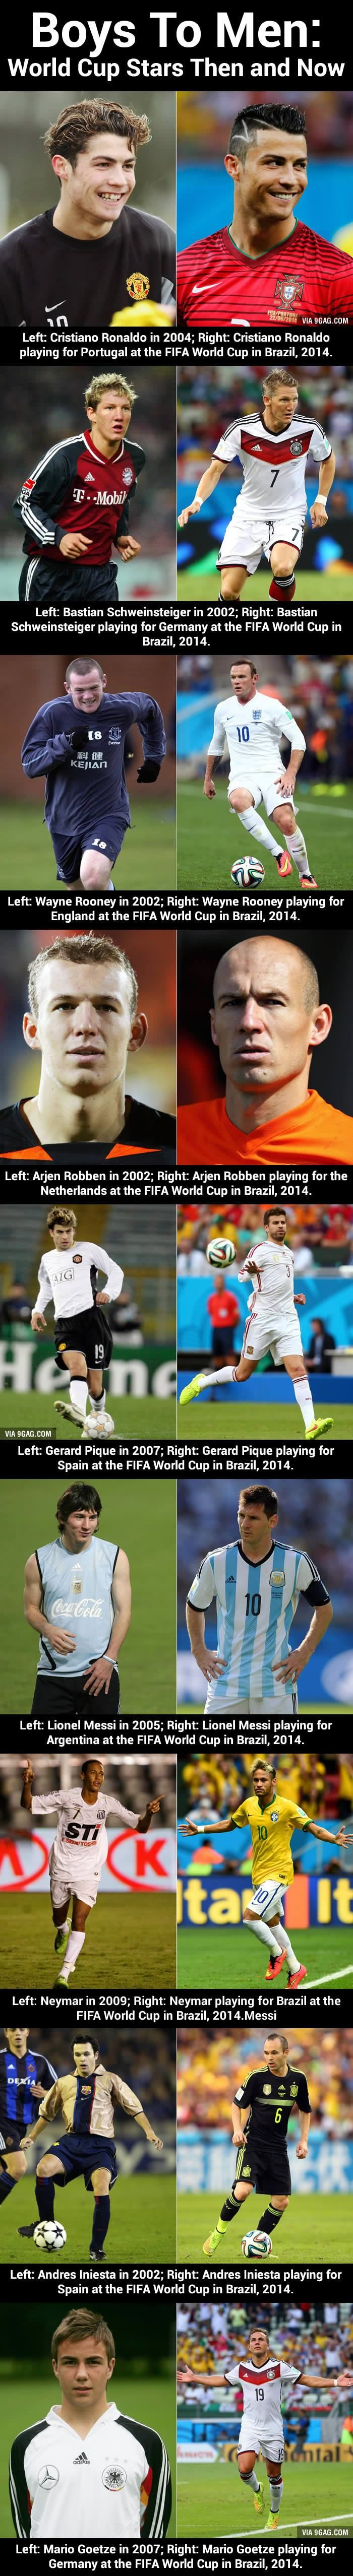 Boys To Men: 9 World Cup Stars Then and Now